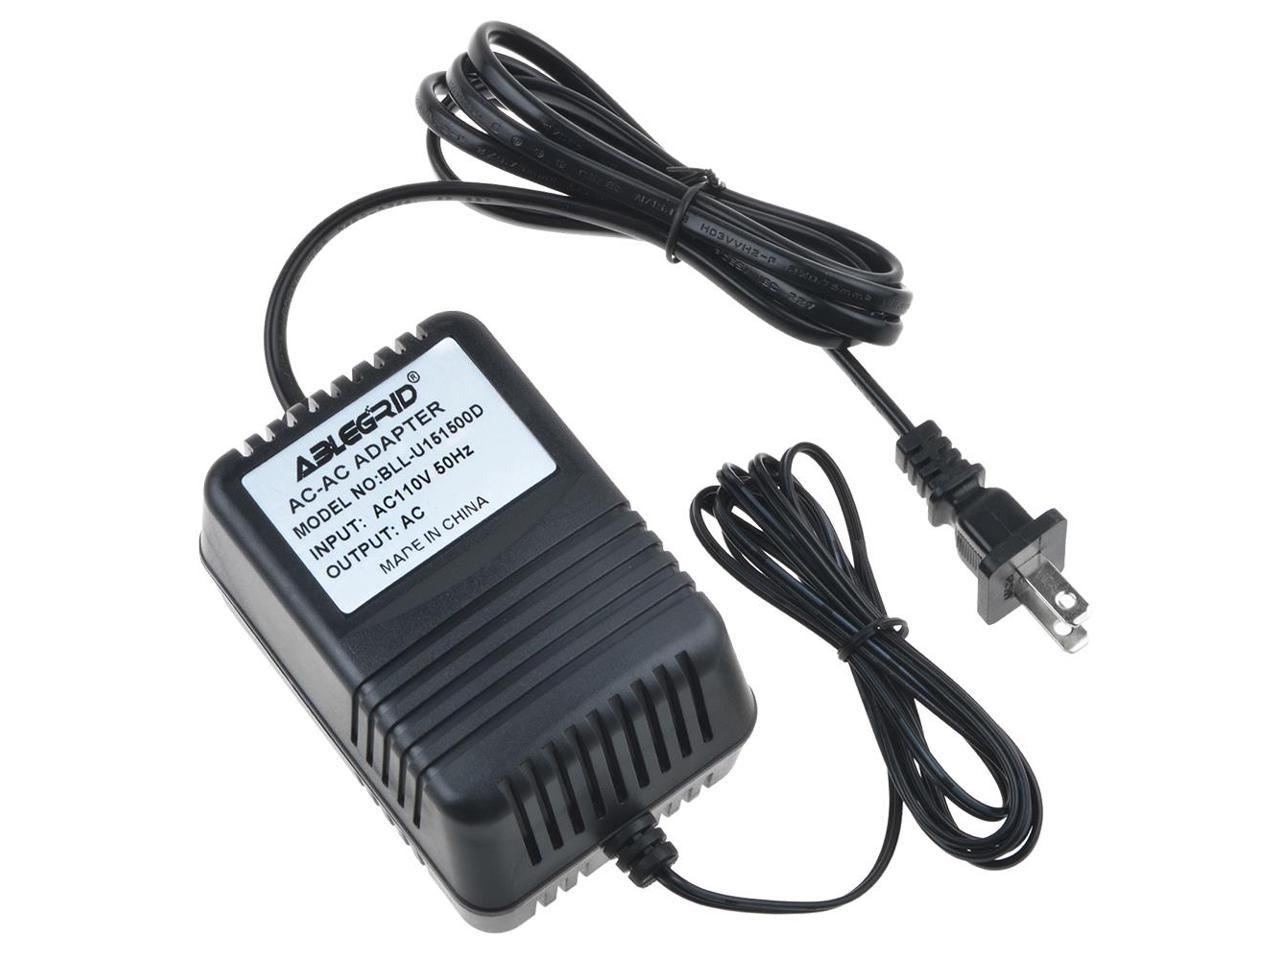 A48S2101000R B2L Therapeutic Massager Back 2 Life Power Supply Charger SLLEA AC//AC Adapter for Back2Life Model